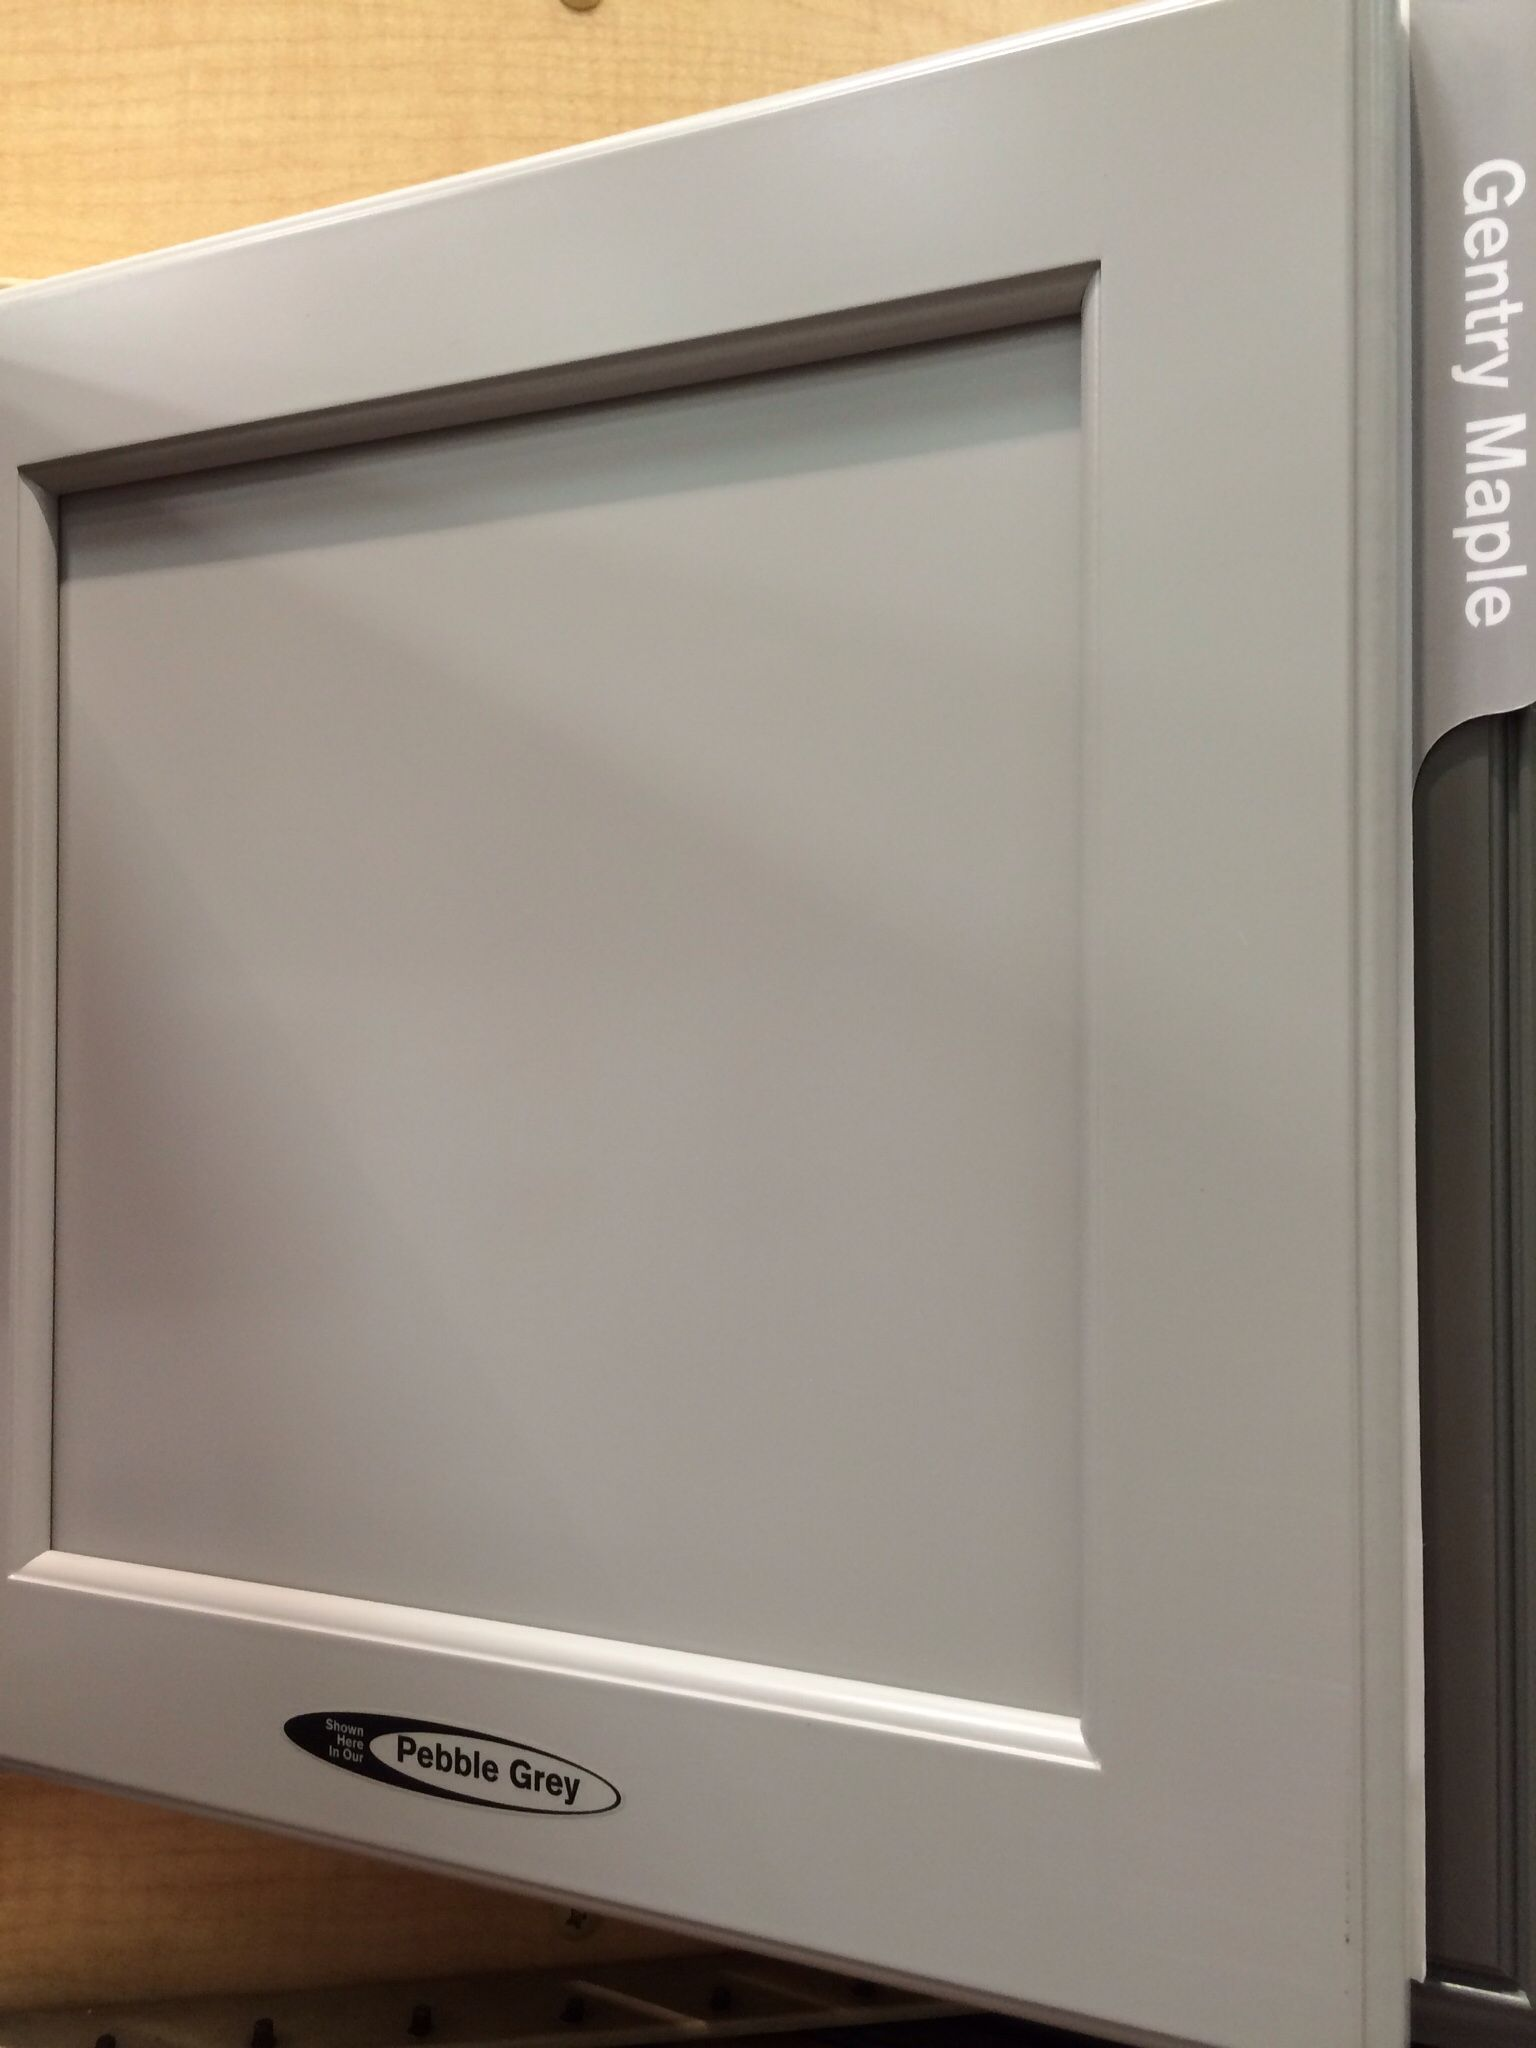 Kraftmaid grey kitchen cabinets - Kraftmaid Pebble Grey Cabinets This Was Lighter Color